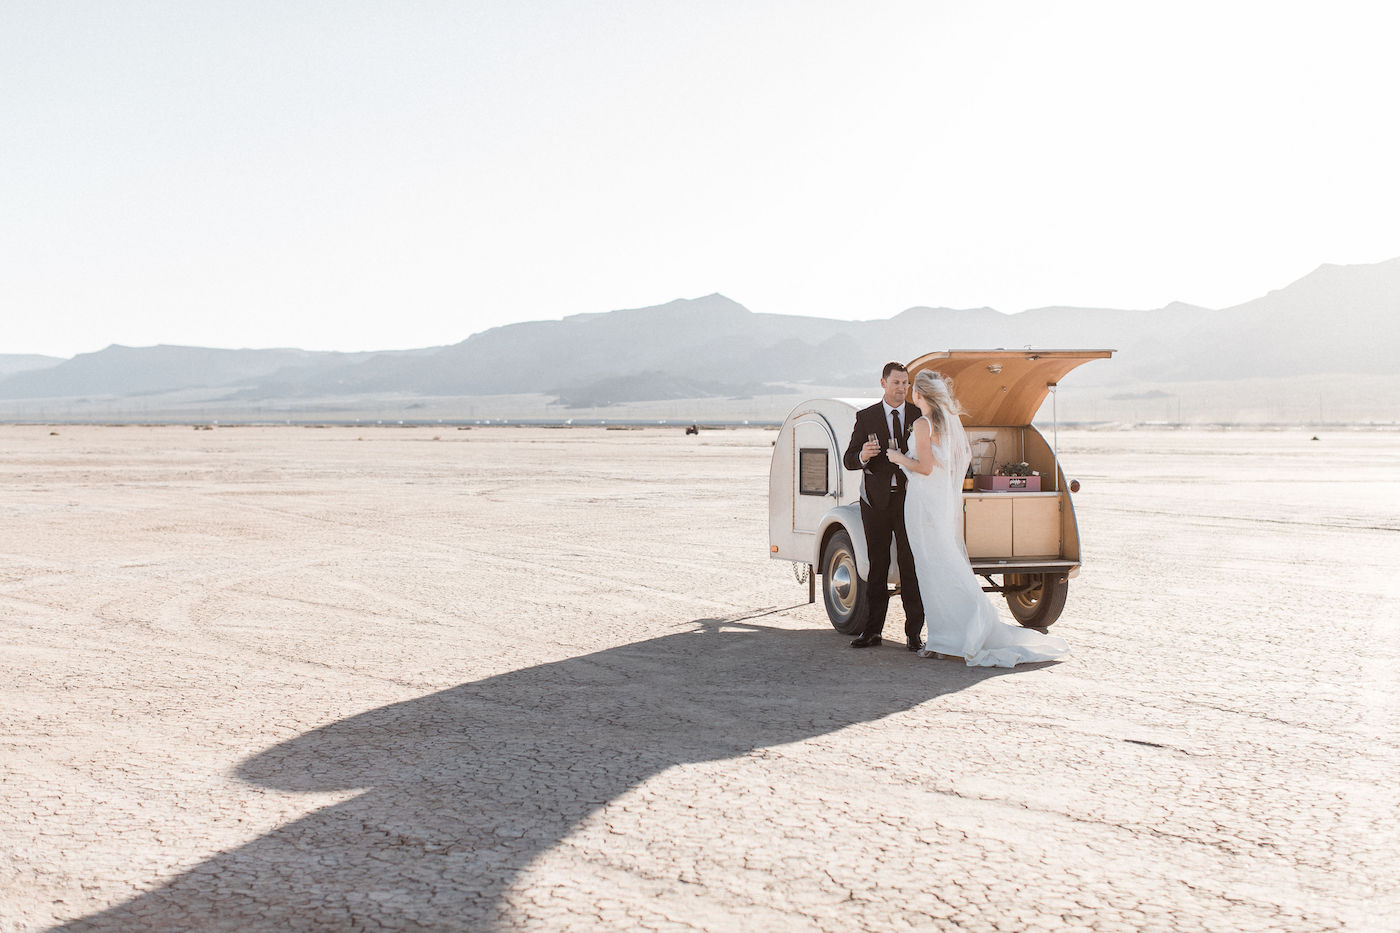 intimate flora pop las vegas elopement at dry lake bed00015.jpg